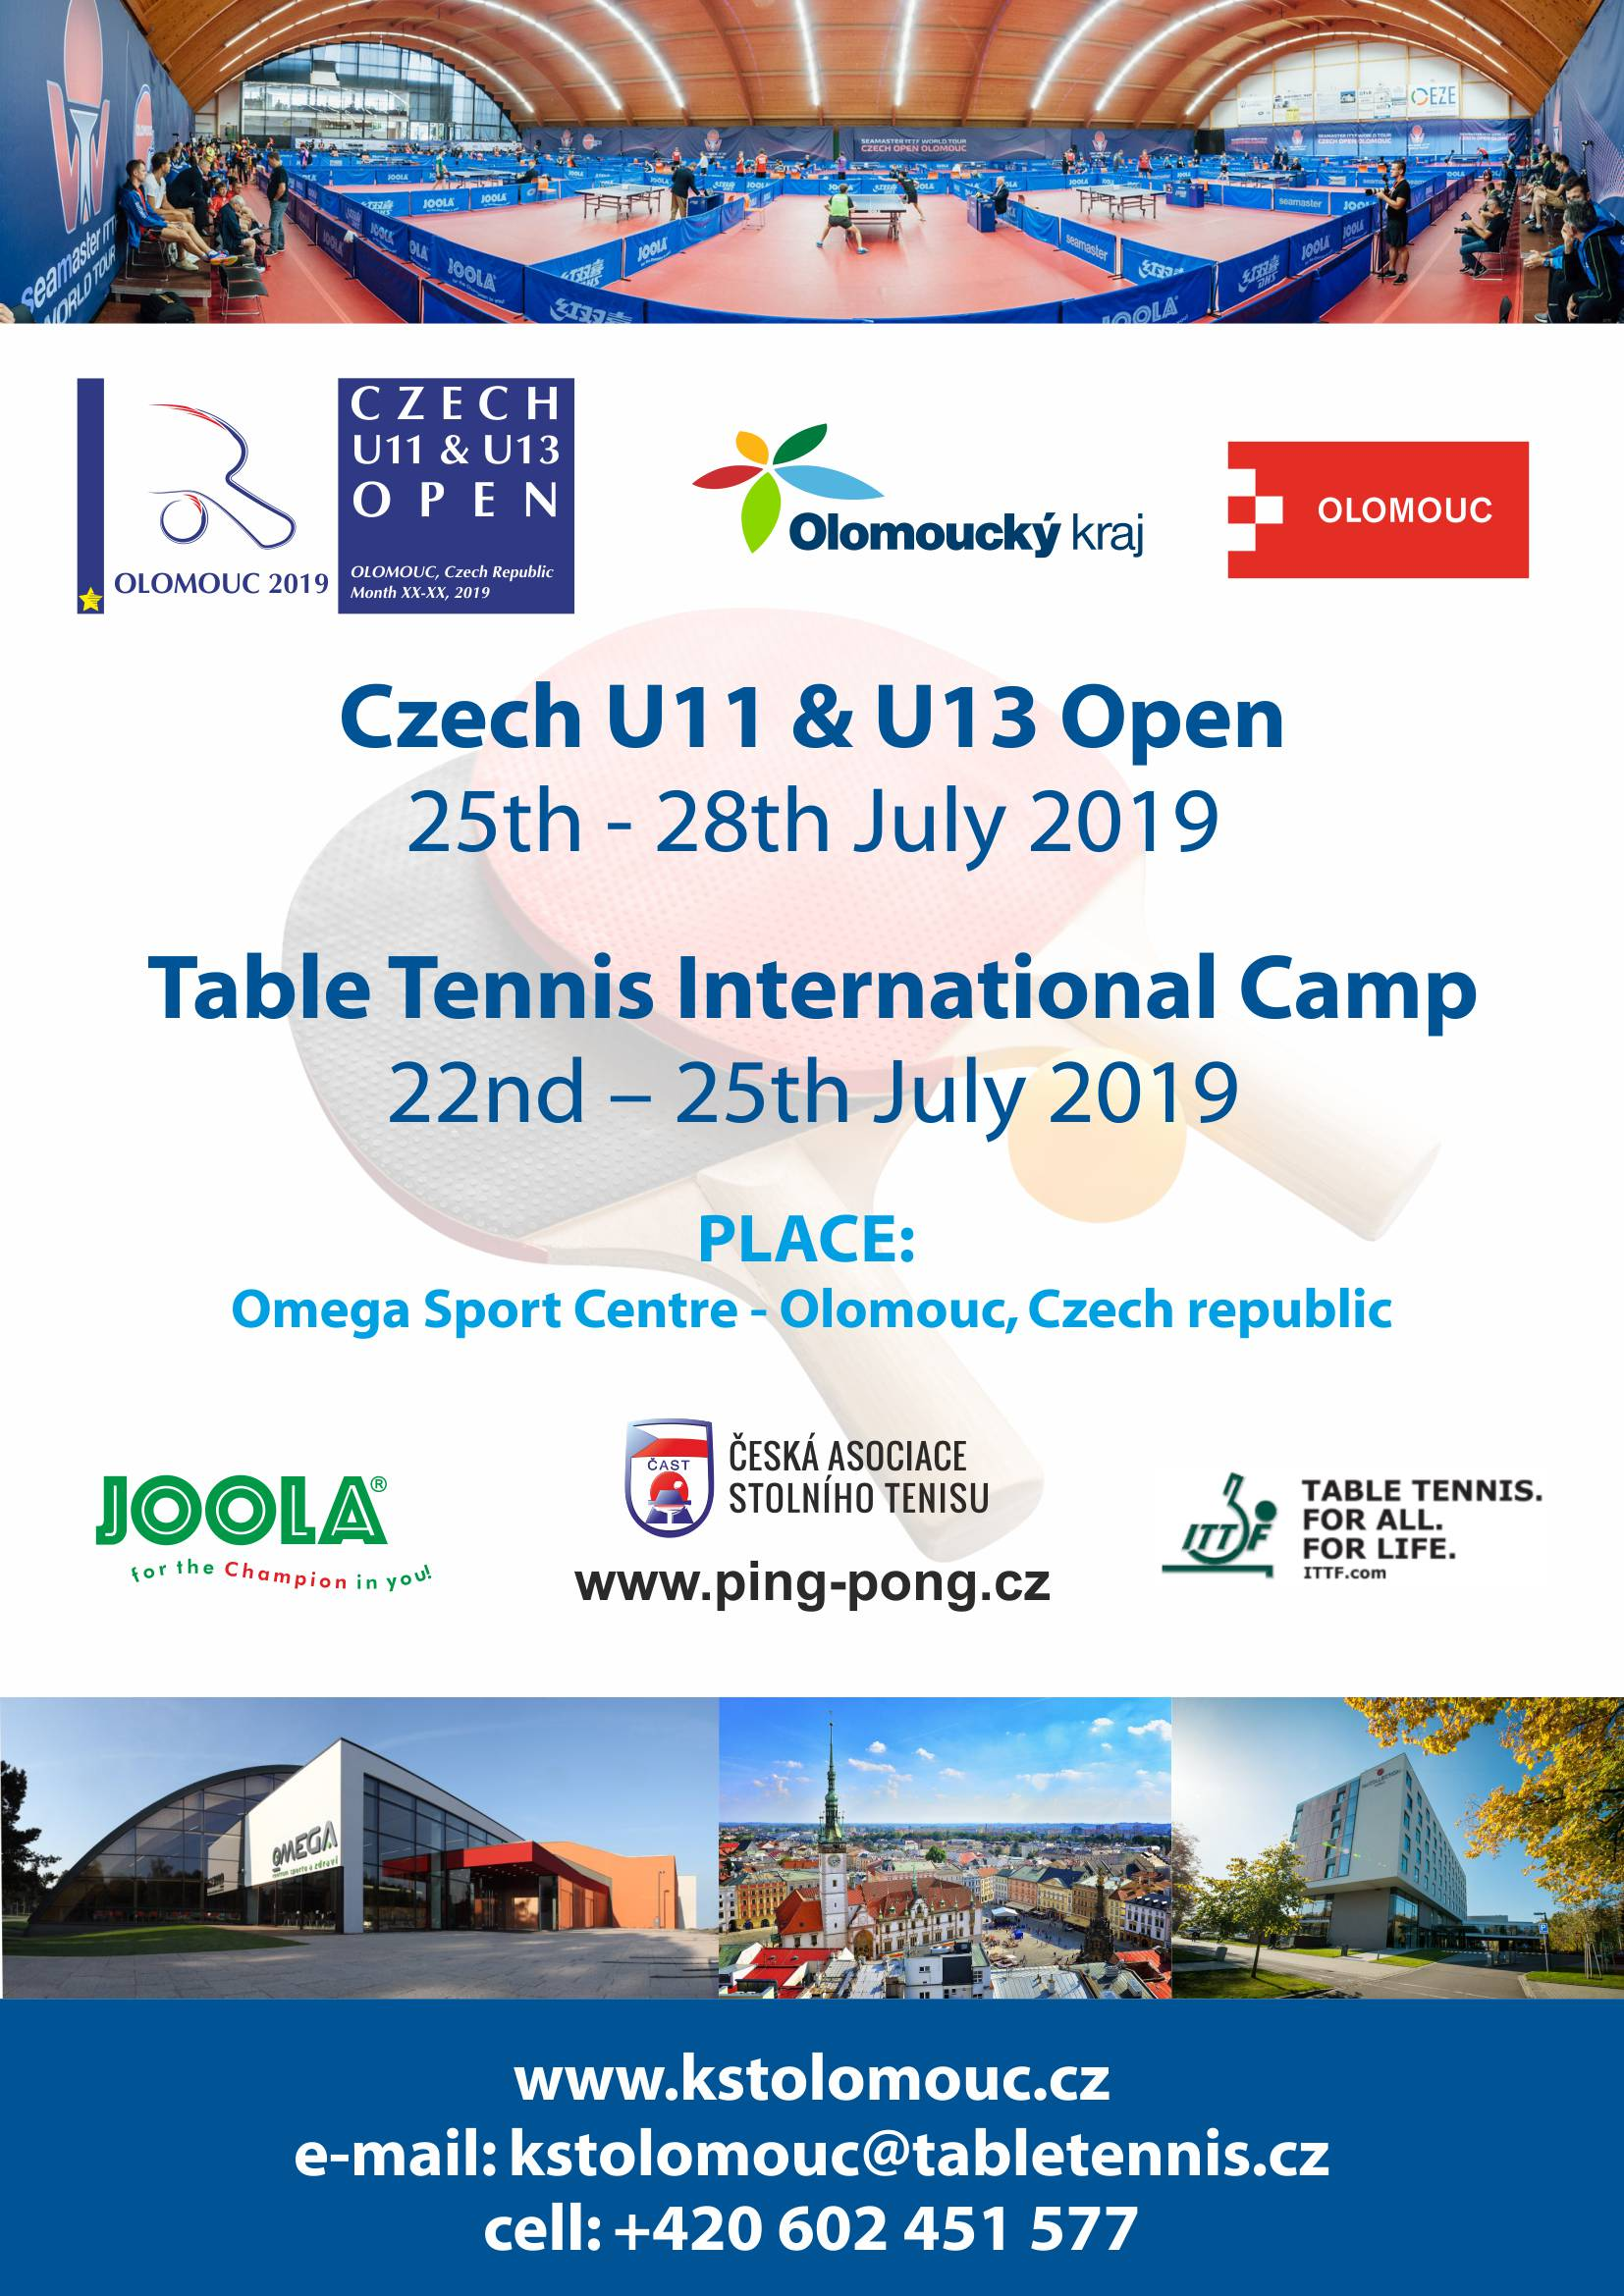 Table Tennis International Camp